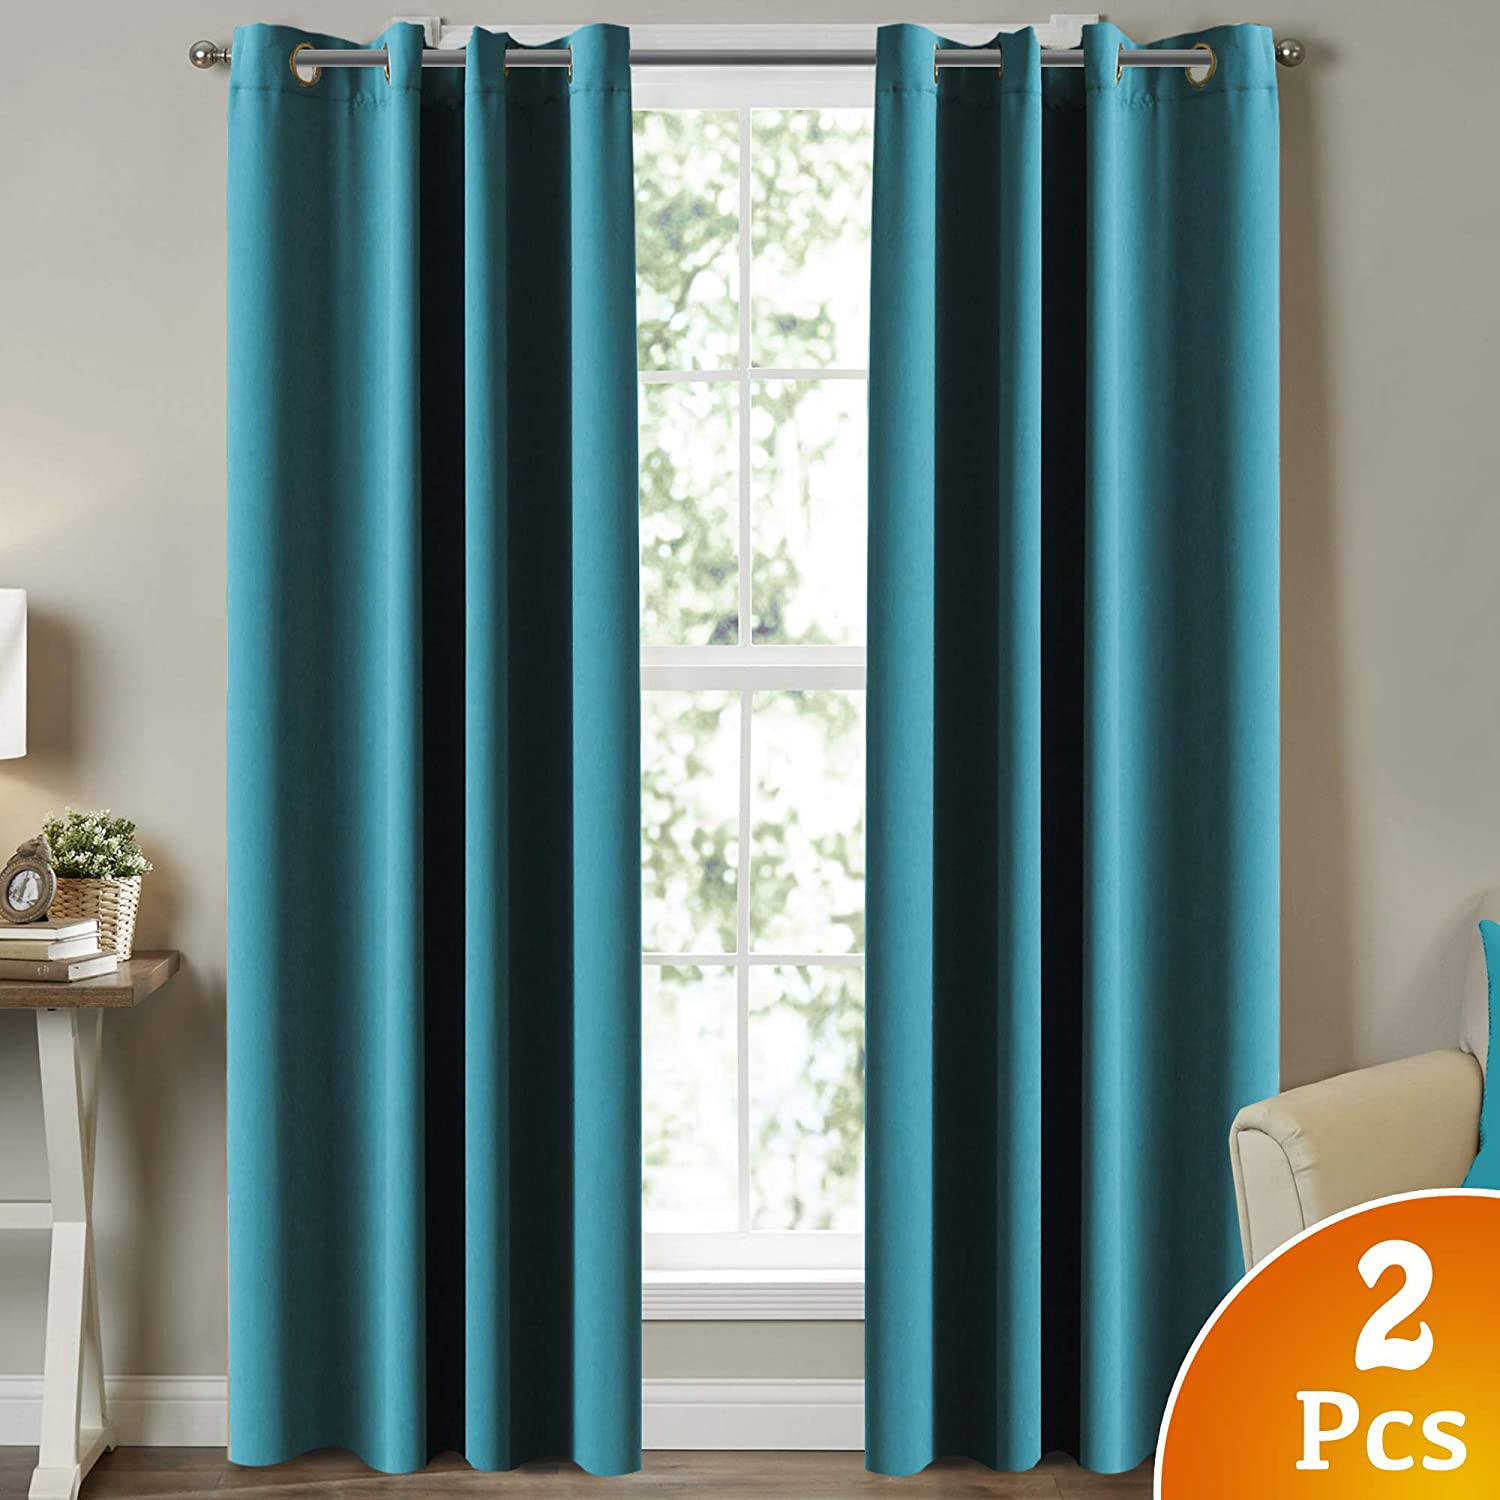 Thermal Insulated Blackout Curtains for Kids Room, Themal Insulated Grommet Nursery & Infant Care Curtains, Extra Long 96  Length Curtains for Patio Door Dining Room, Turquoise bluee